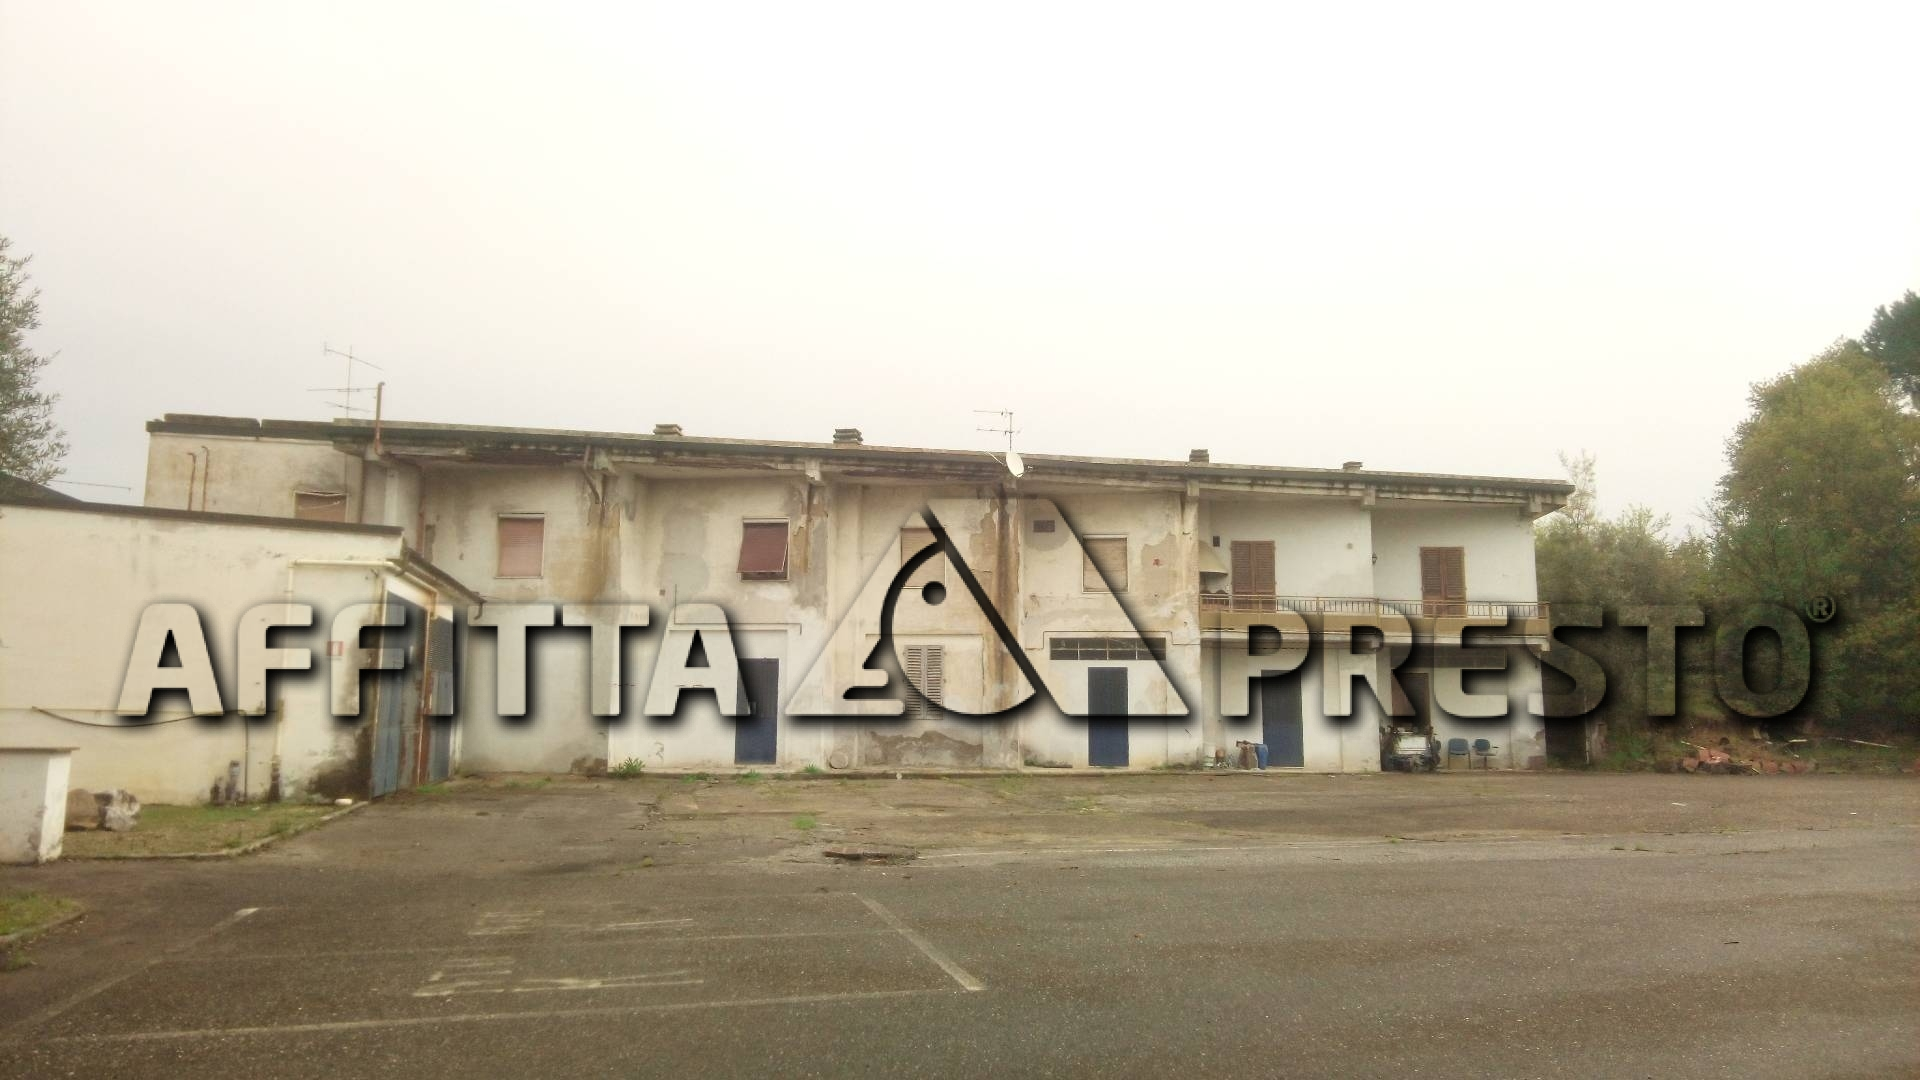 Capannone industriale in affitto - Montopoli in Val d'Arno